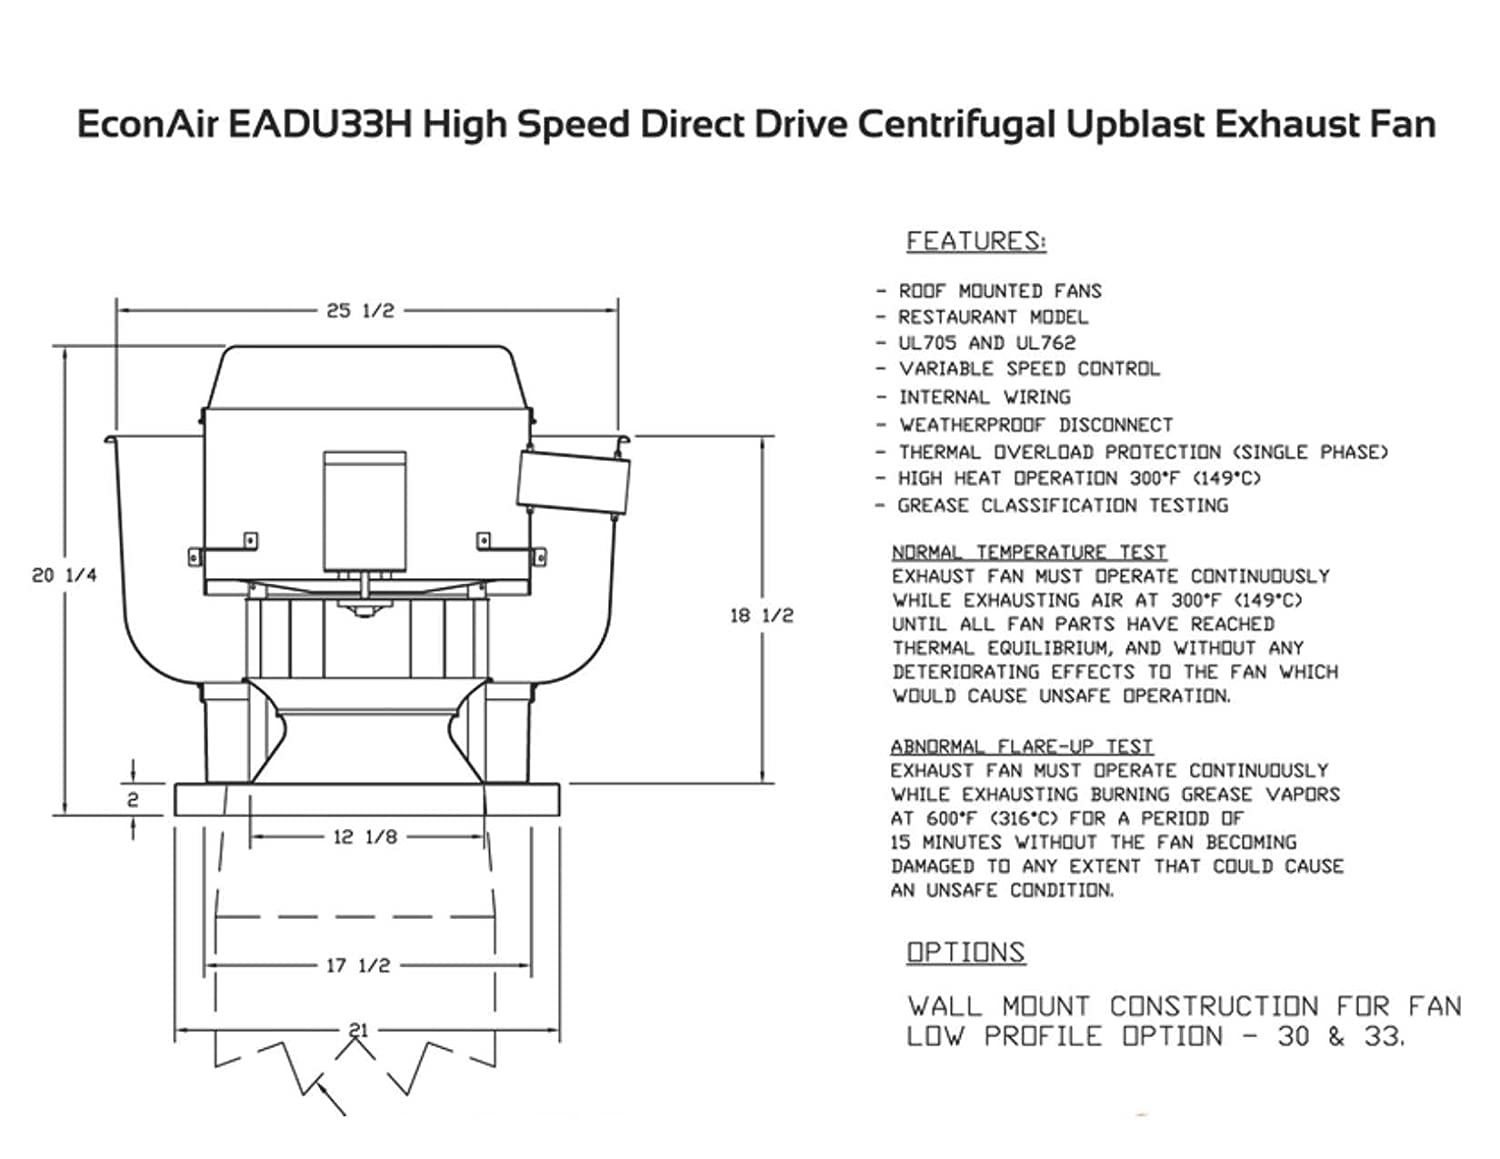 1000 Cfm Direct Drive Upblast Restaurant Exhaust Fan With 1175 Commercial Kitchen Hood Wiring Schematic Wheel Motor 333 Hp 115 V Single Phase